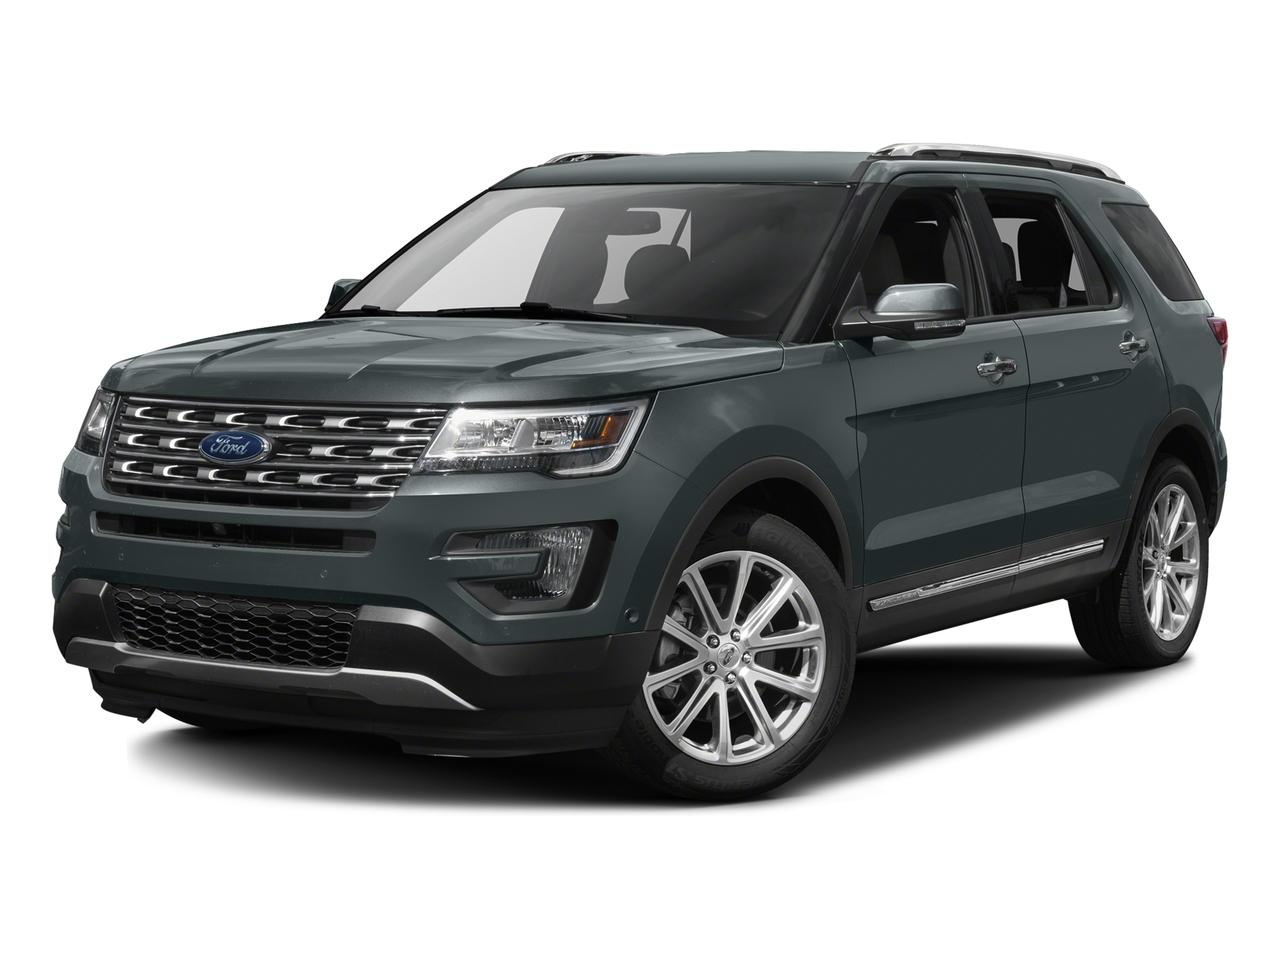 2016 Ford Explorer Vehicle Photo in Prince Frederick, MD 20678